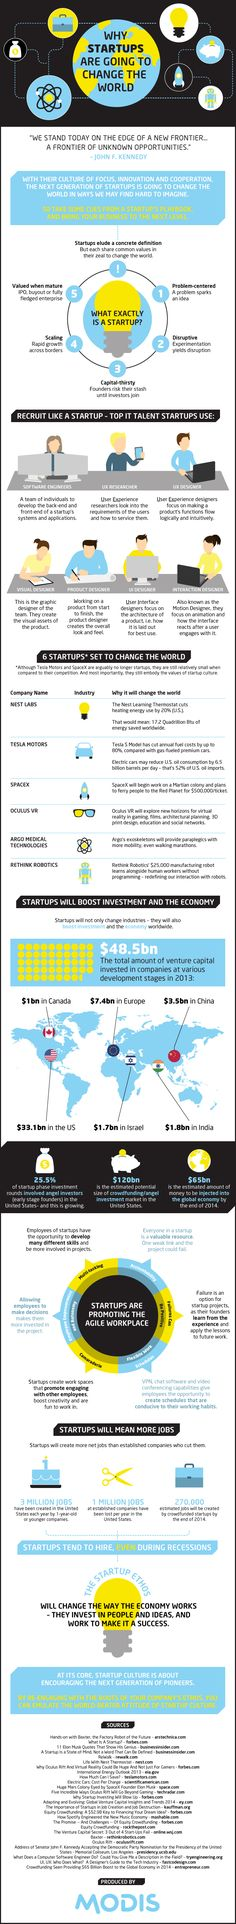 Infographic: Why Startups Are Going to Change the World